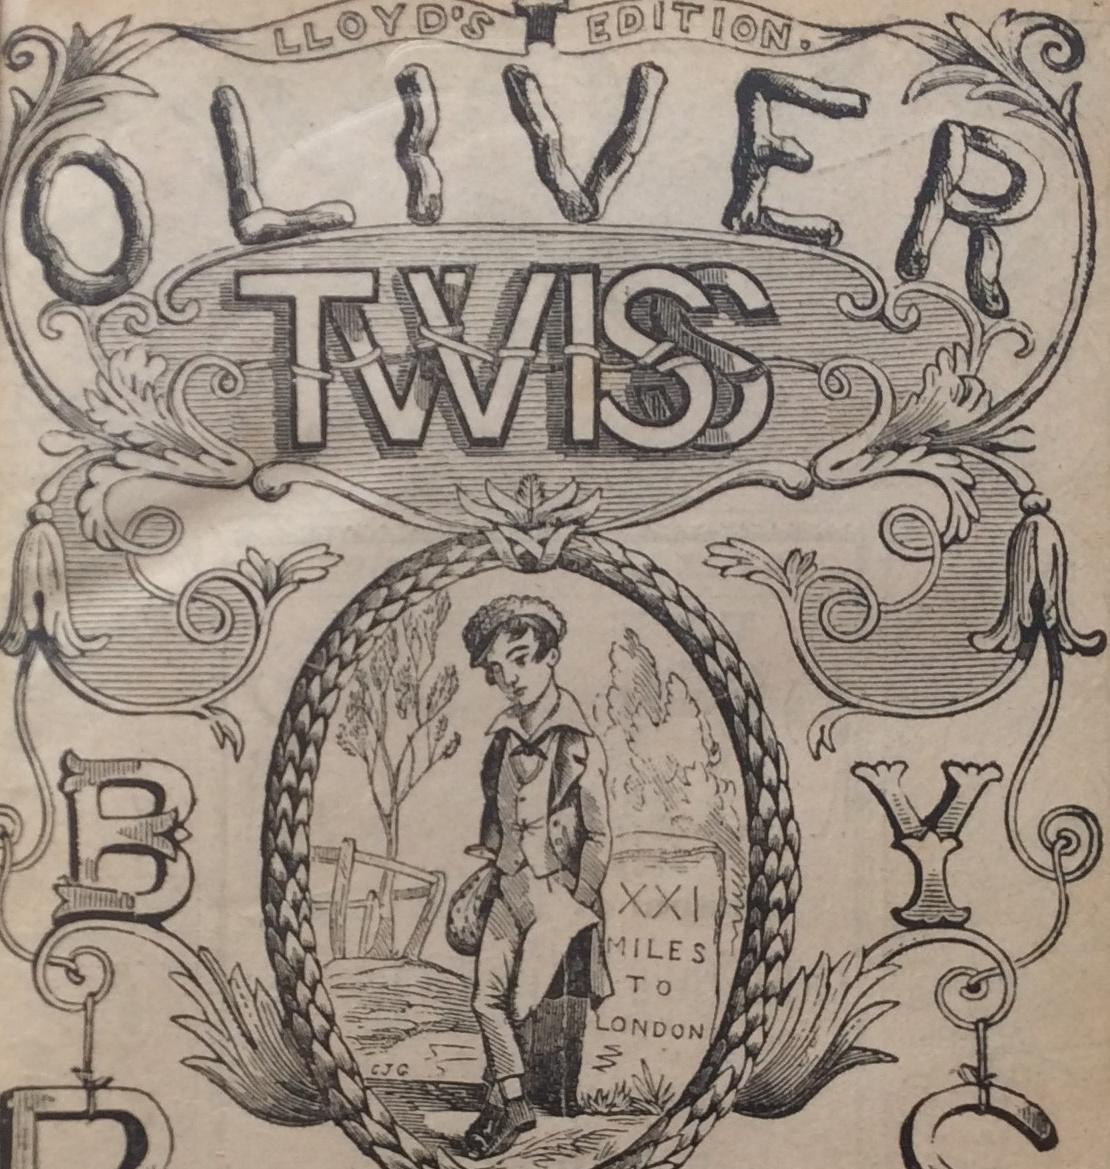 Oliver Twiss and Martin Guzzlewit – the fan fiction that ripped off Dickens